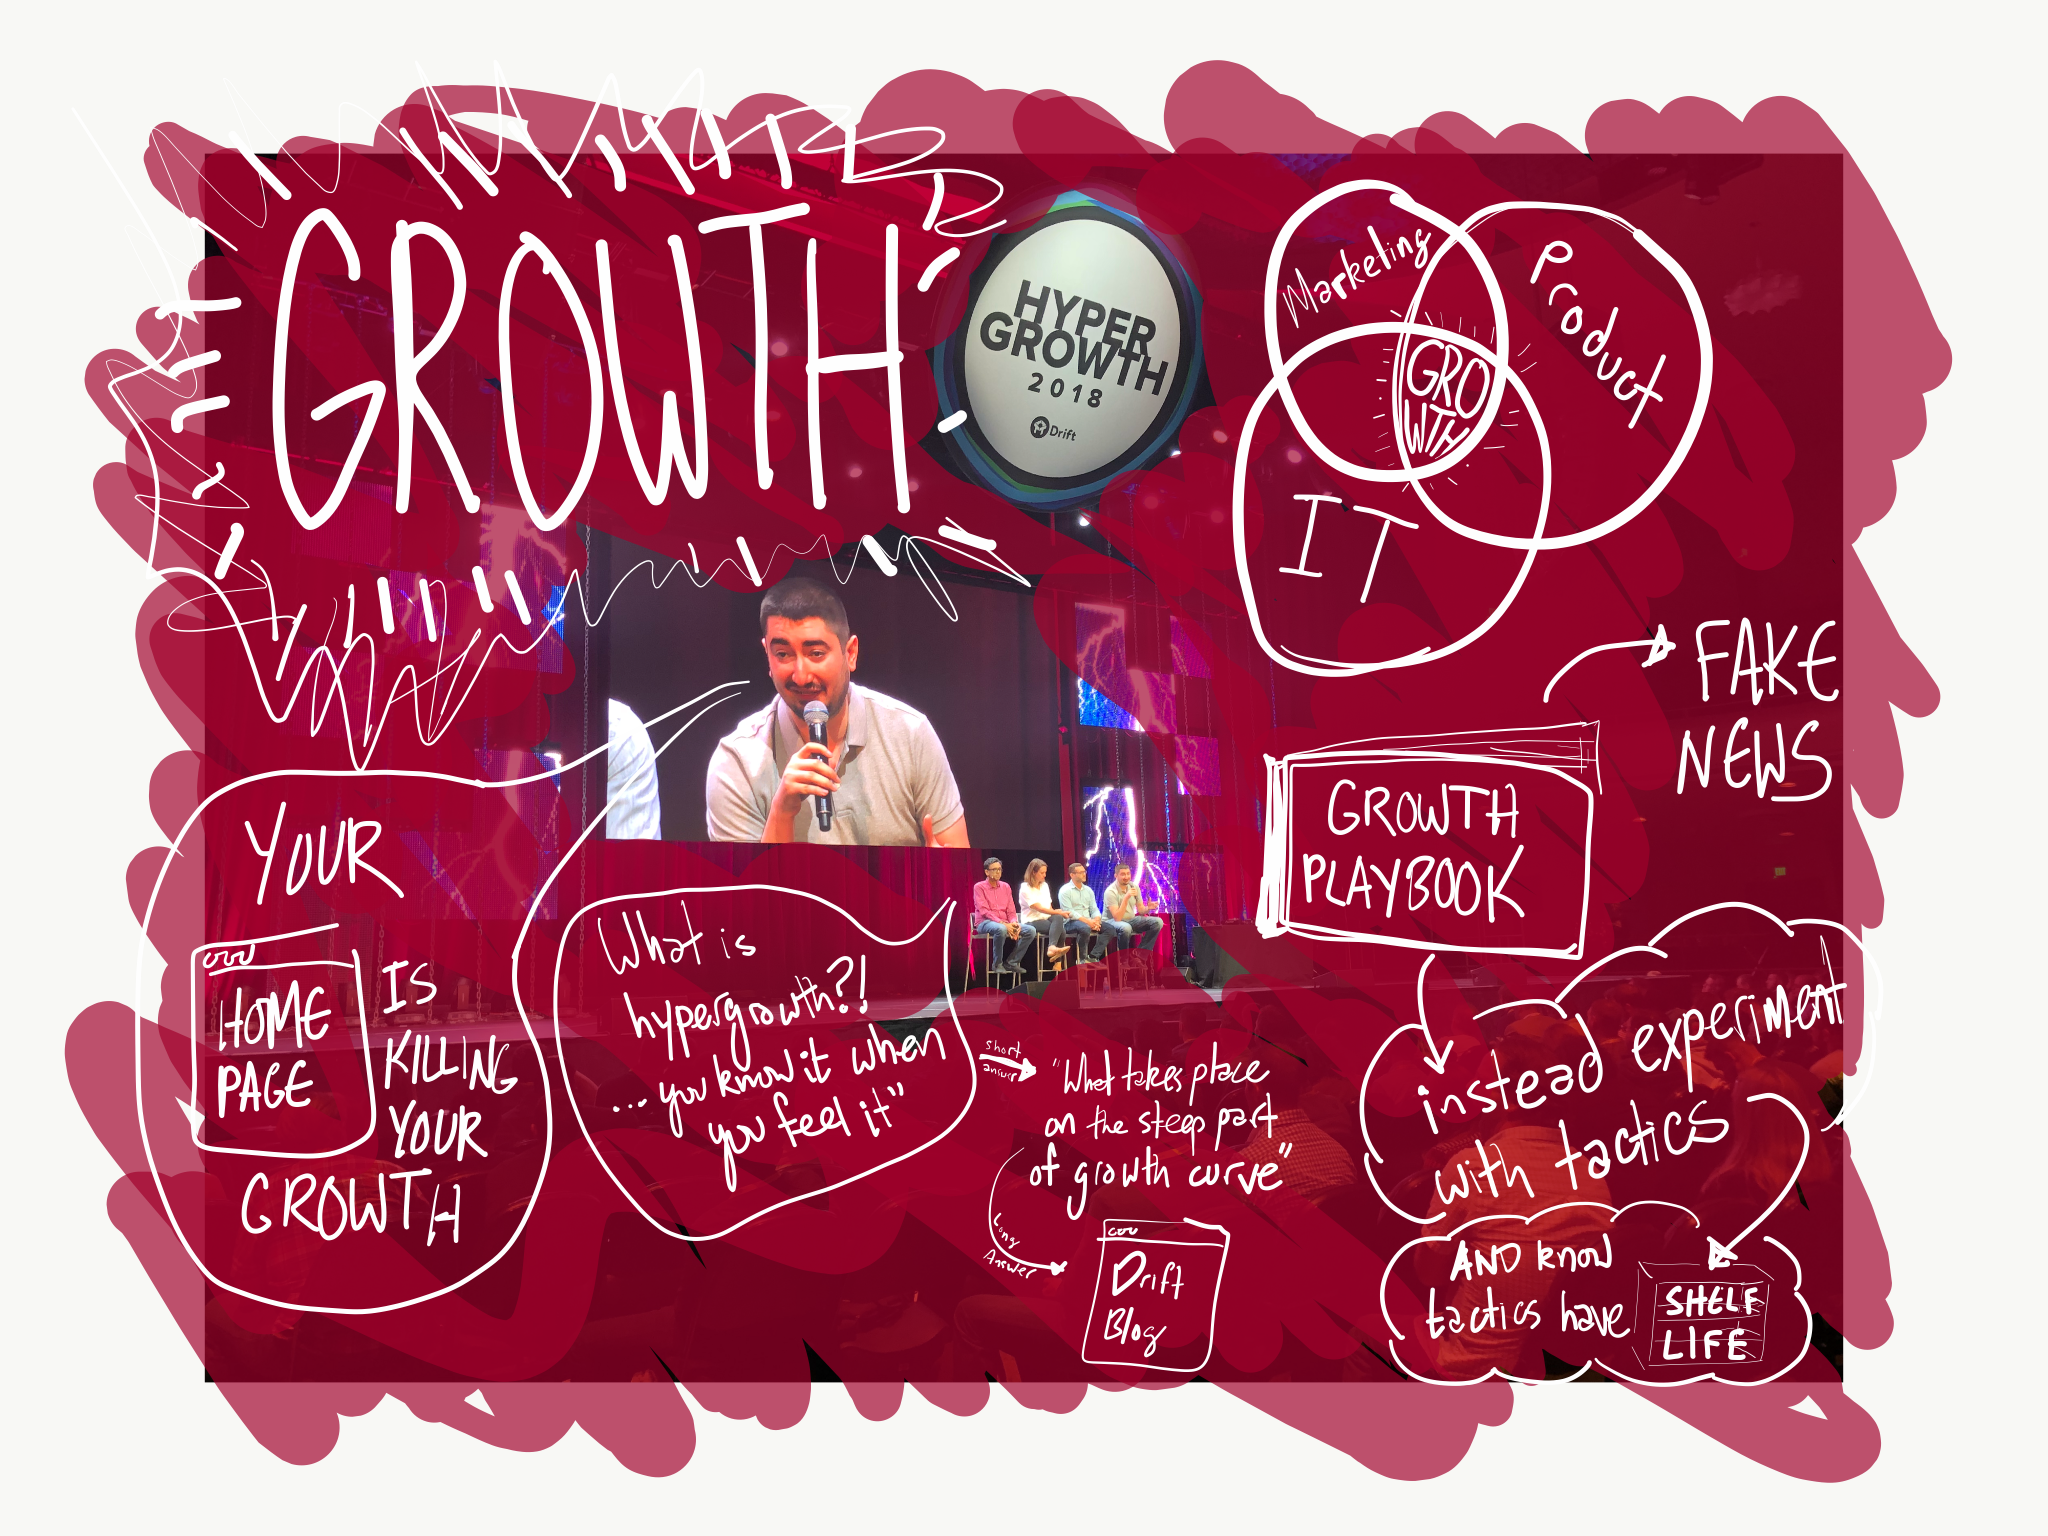 "#7 - Growth playbooks don't exist. - Fantastic Growth panel: Emily Kramer, Hiten Shah, Yuriy Timen, and Kamo Asatryan 🙌Markets are dynamic, we have to keep experimenting.Don't trust tools/services that have ""growth on lock""."